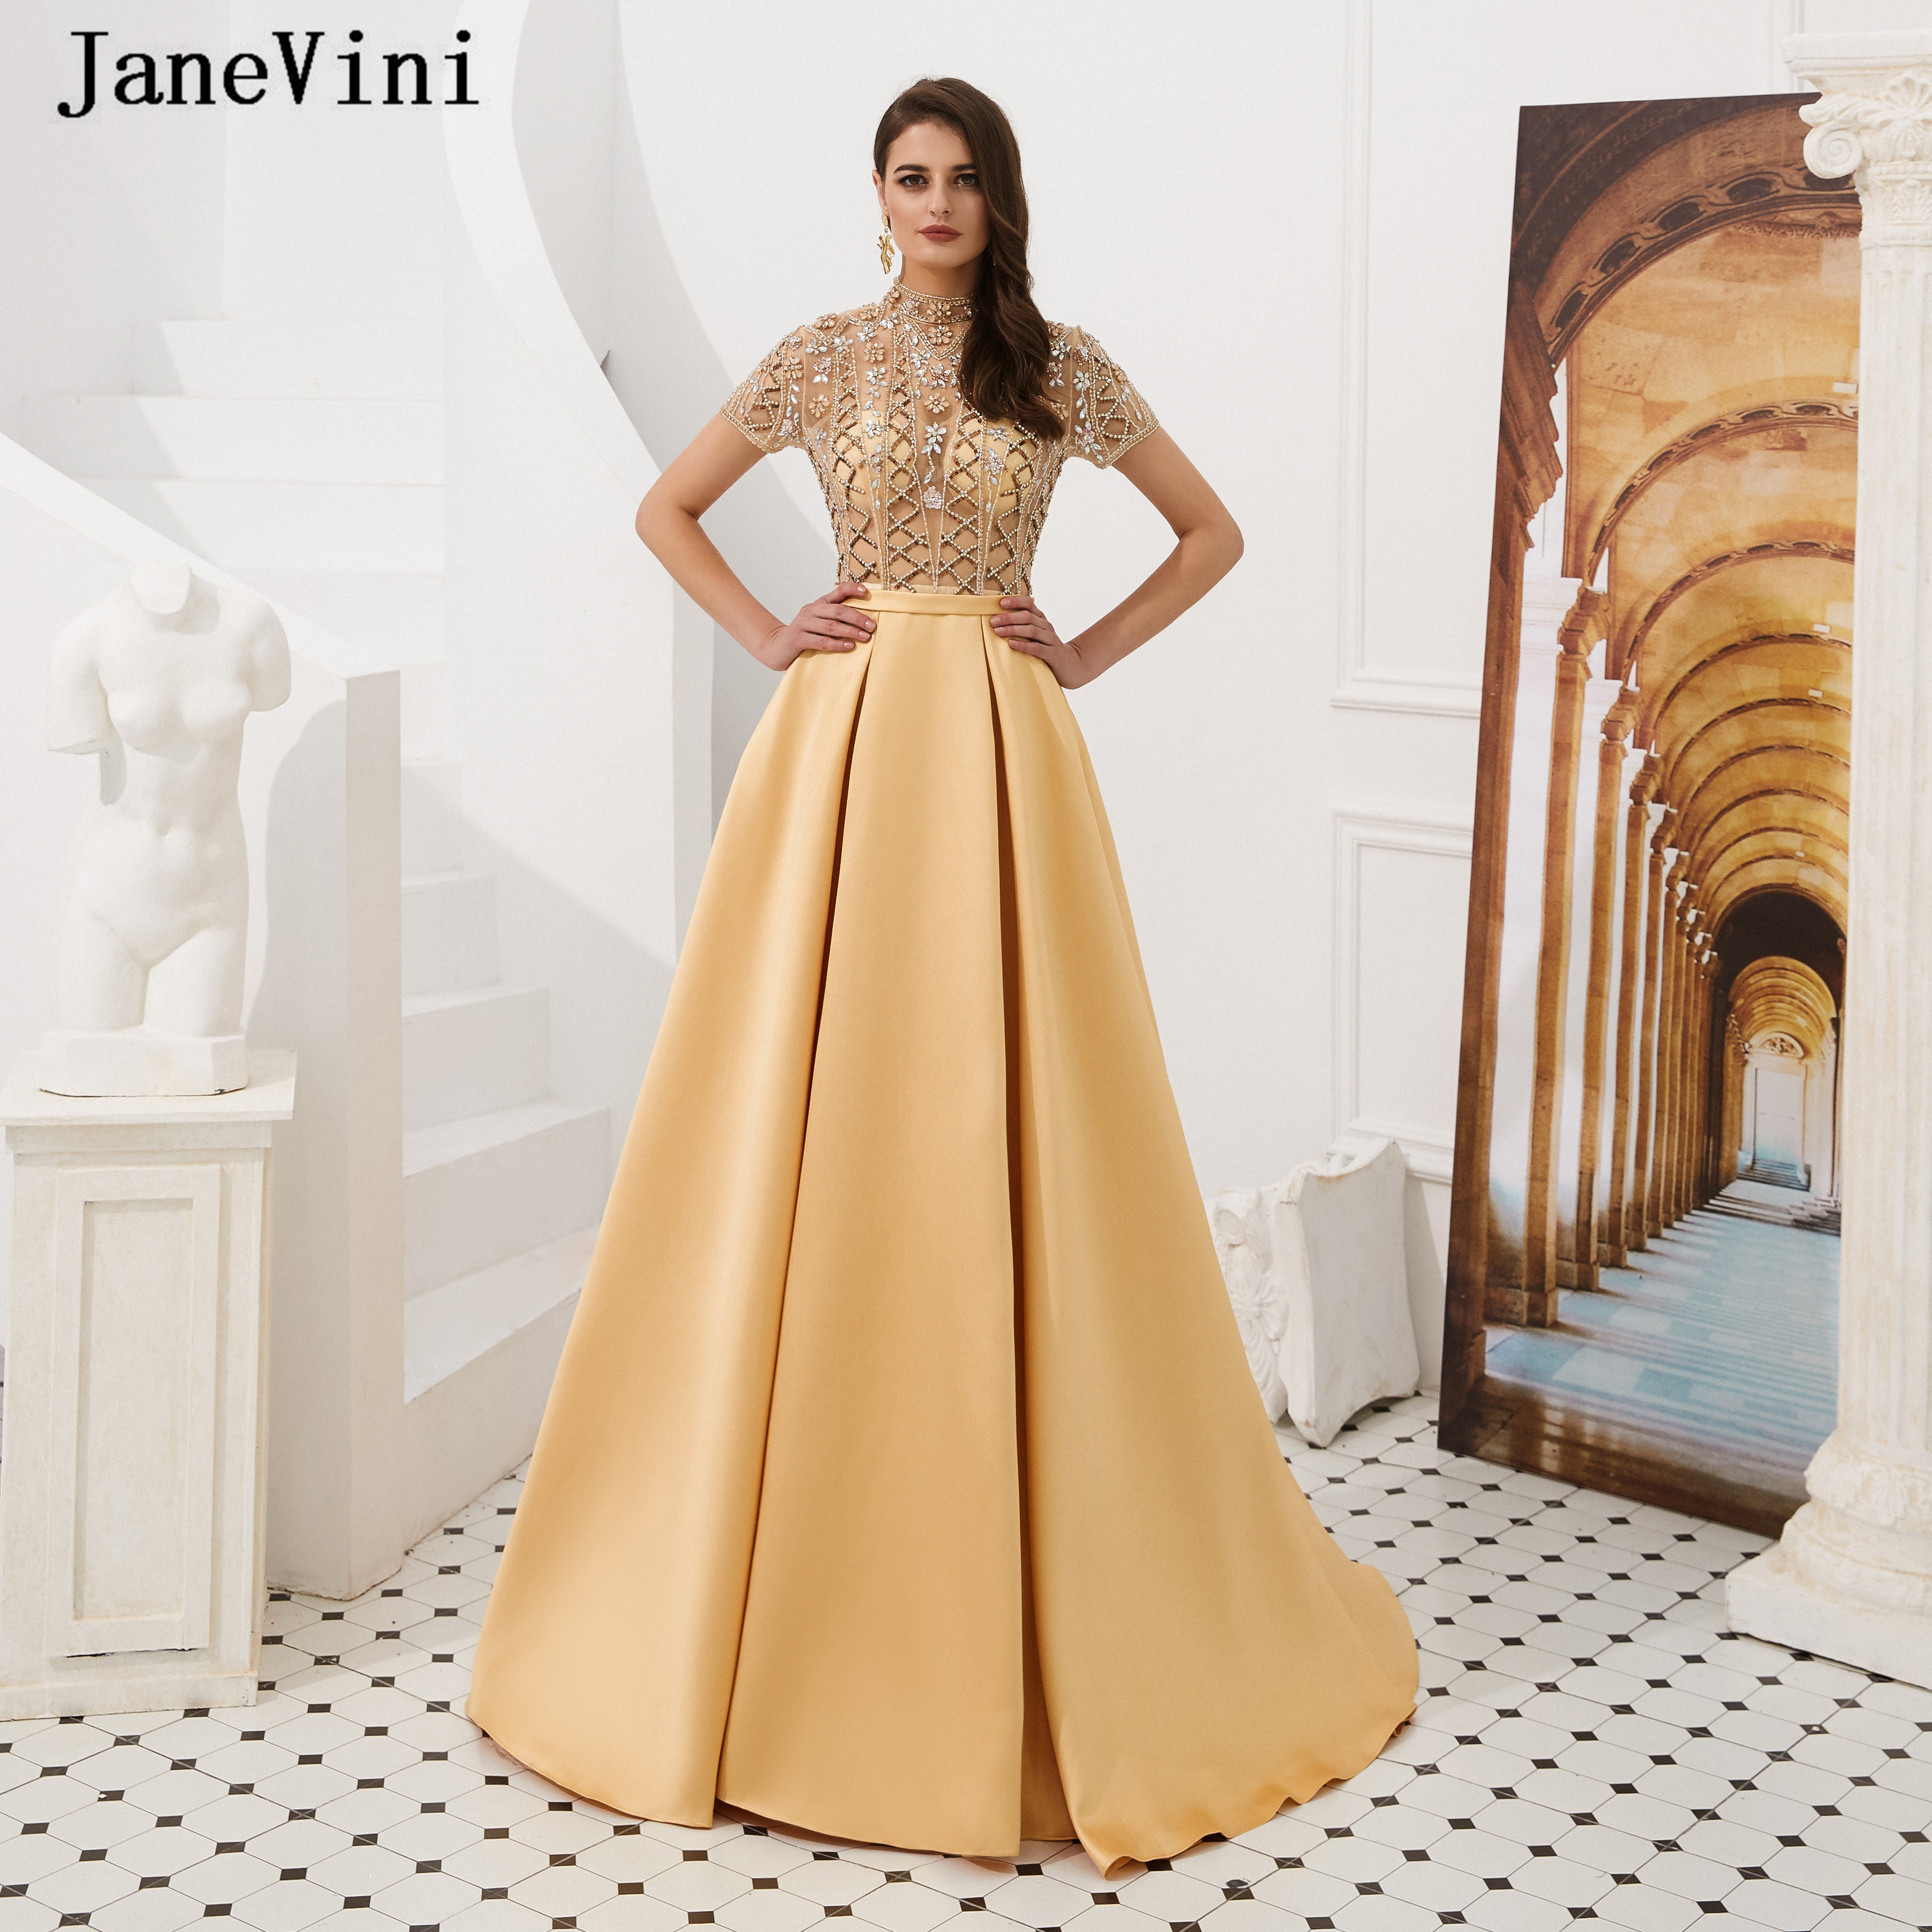 JaneVini Dubai Gold High Neck Luxury Short Sleeve Long   Prom     Dresses   2019 Shiny Beading Satin A Line Evening Gowns Robe De Soiree